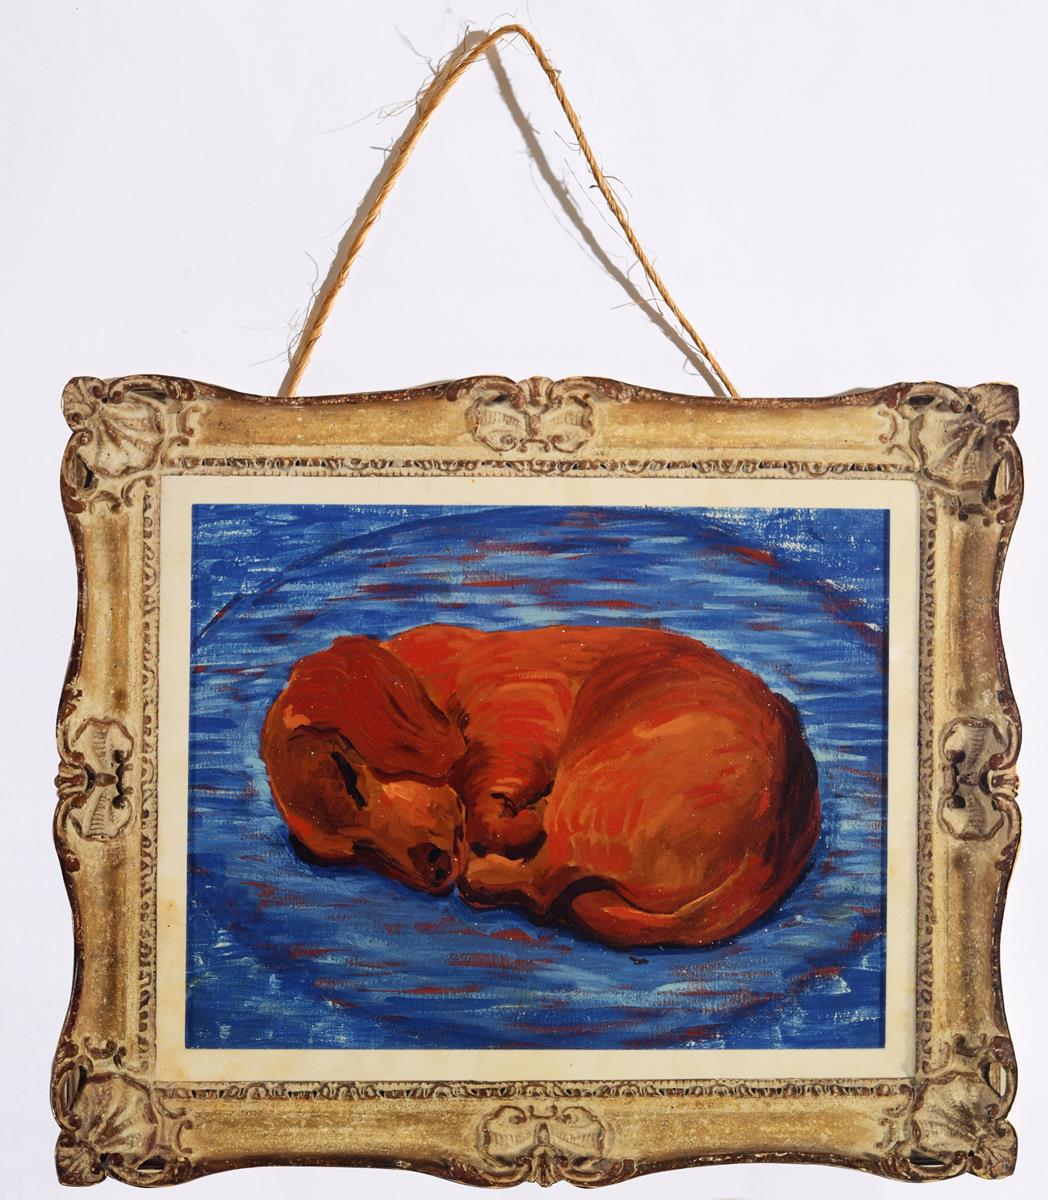 Lot 52 - David Hockney (b. 1937), 'Little Stanley Sleeping', a cut out from 1987 Tate Gallery Exhibition,